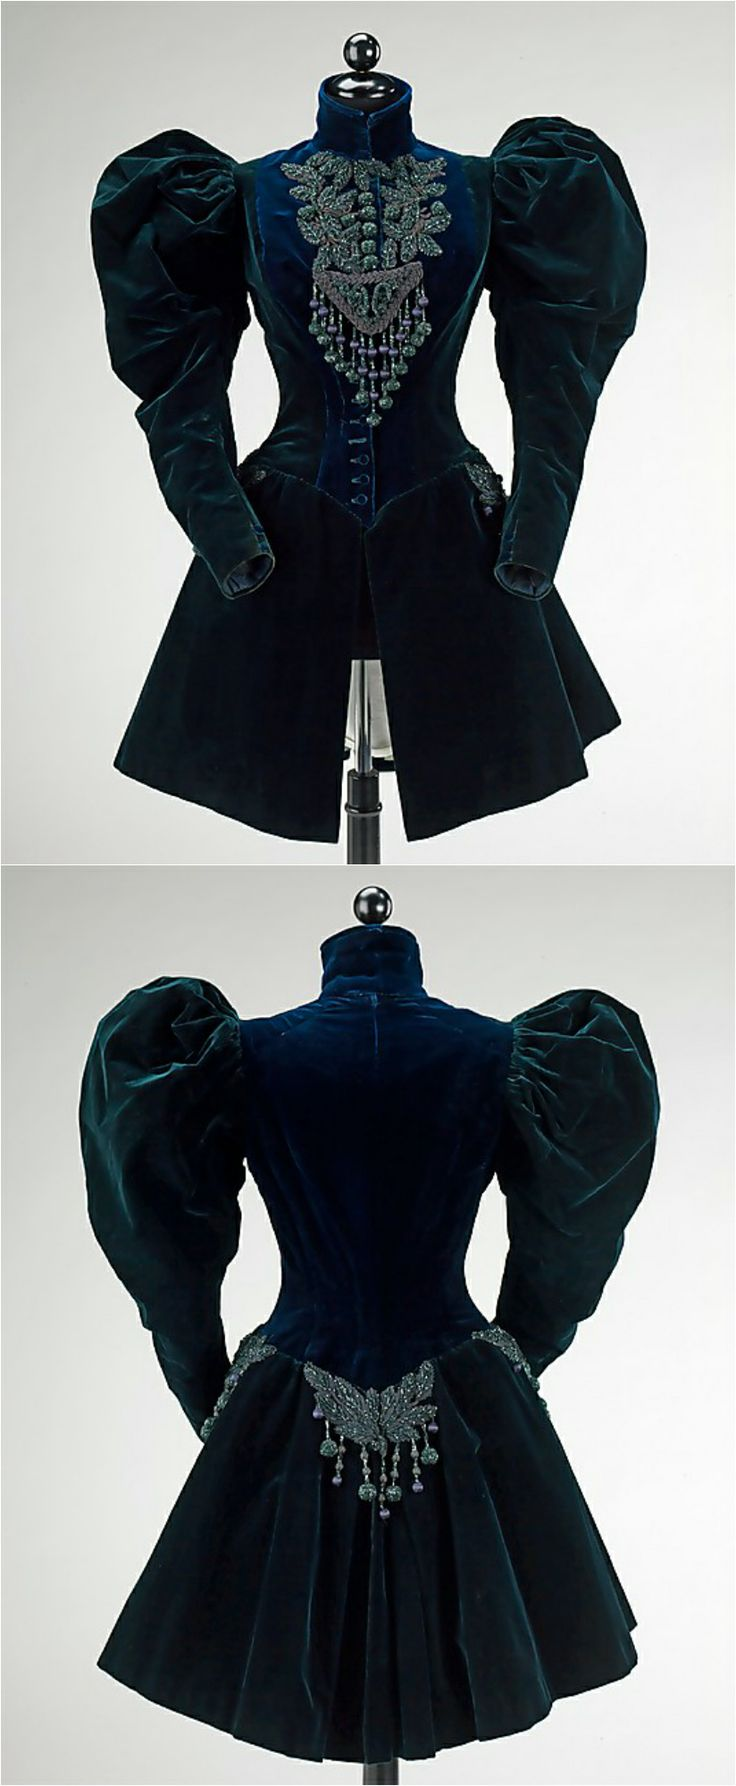 Afternoon jacket, Augustine Martin & Company, 1895, at the Met. See: http://www.metmuseum.org/collections/search-the-collections/159237?img=0